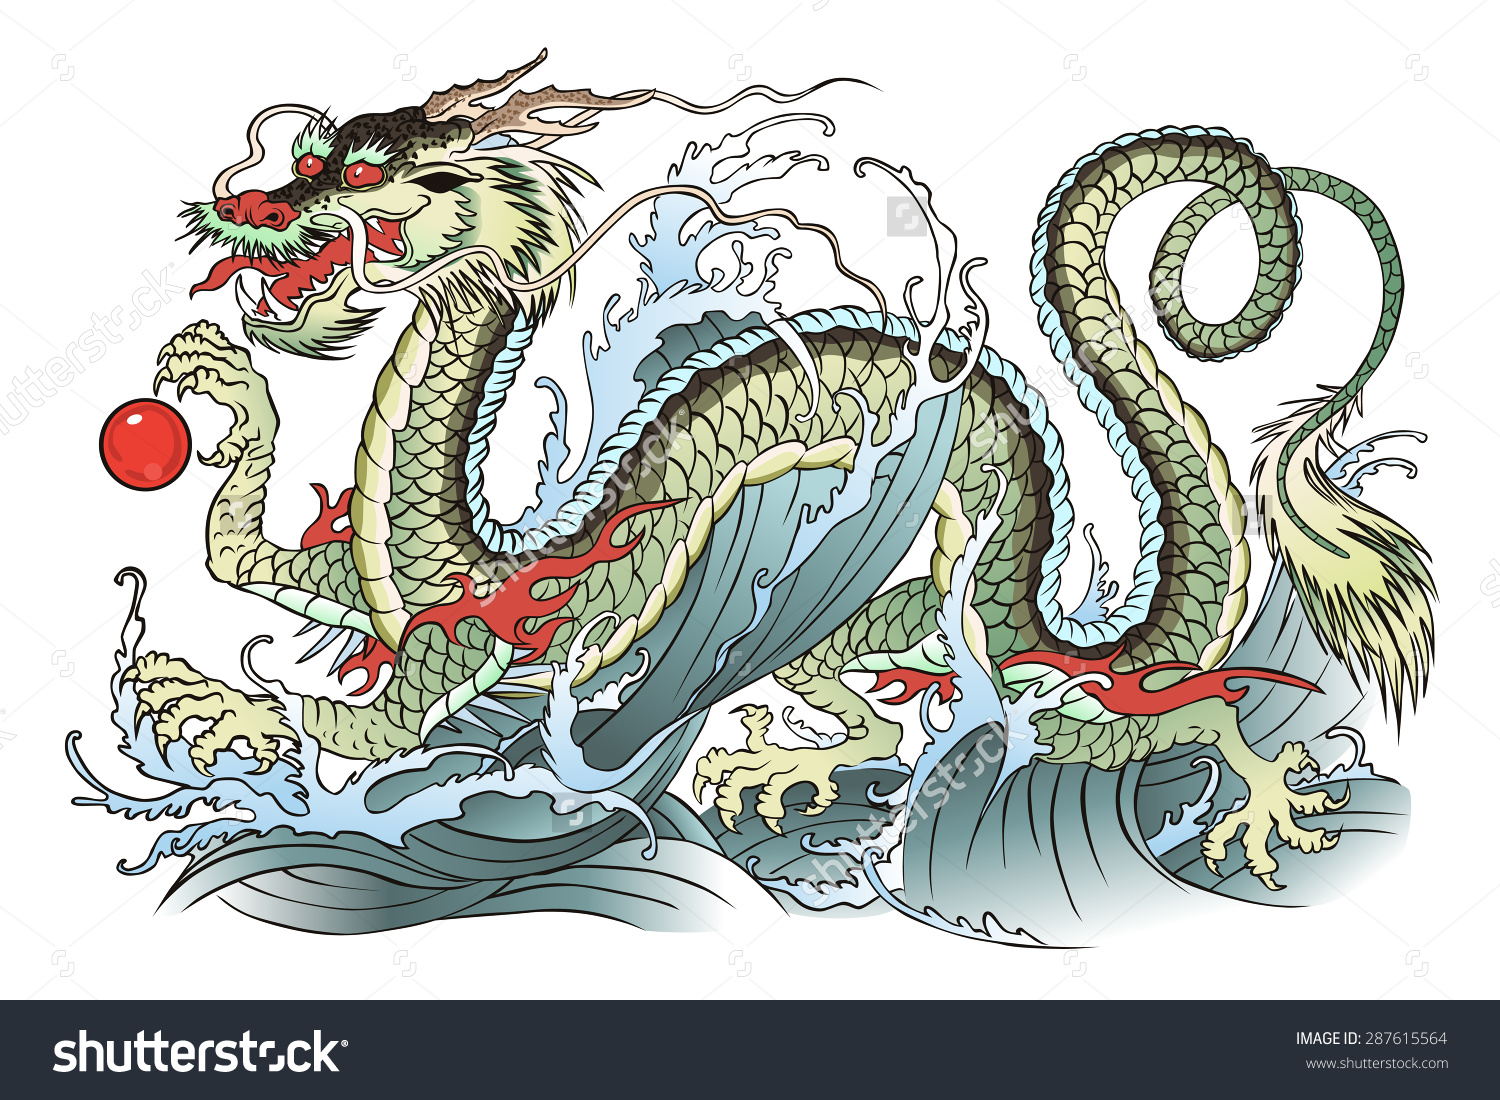 Eastern Water Dragon clipart #1, Download drawings